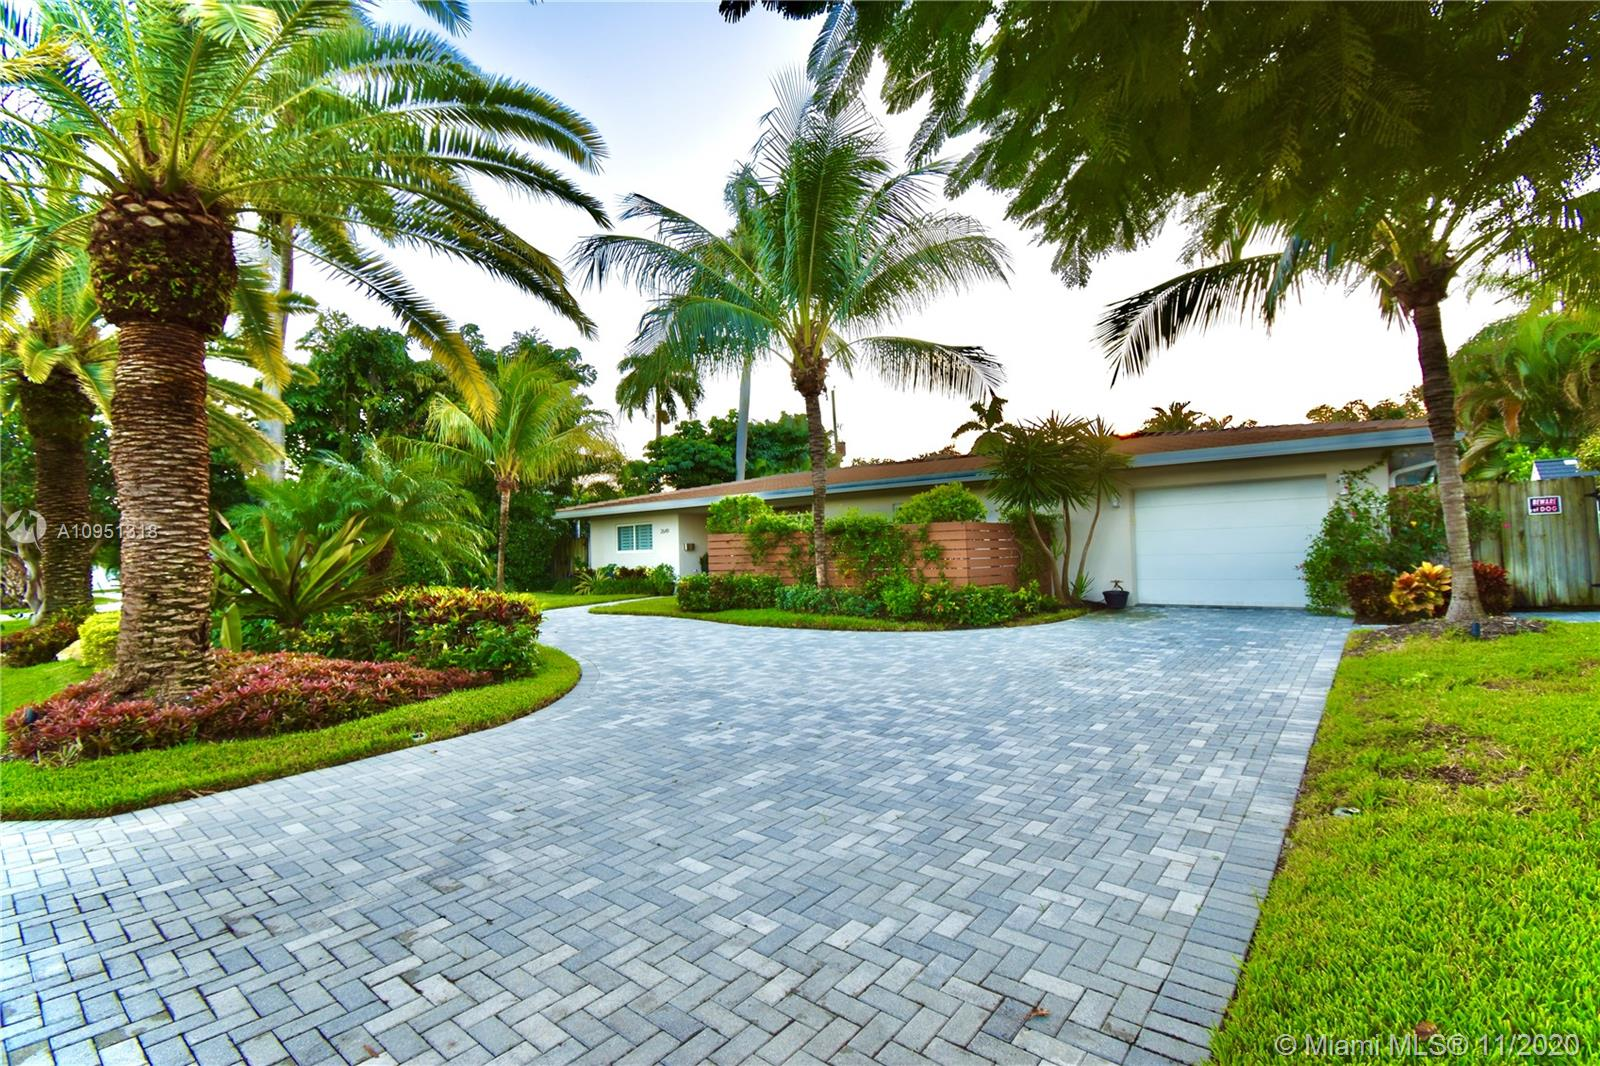 2649 NE 27th Ter Property Photo - Fort Lauderdale, FL real estate listing